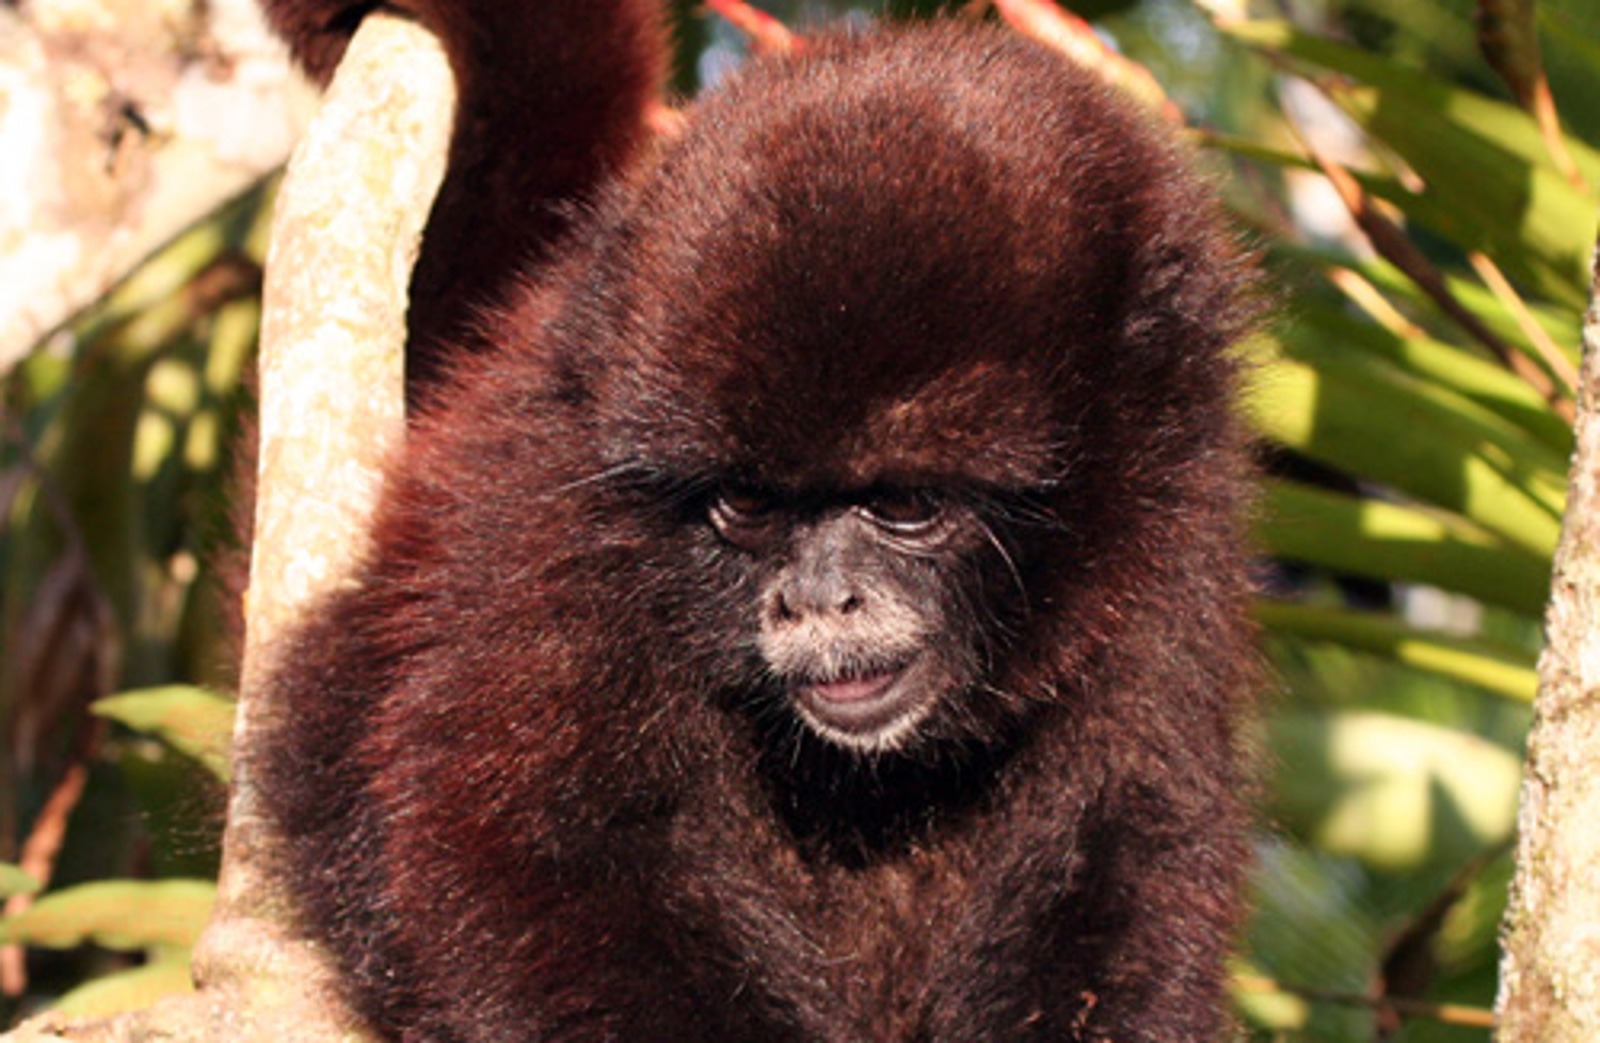 Success! Community Conservation Brings Critically Endangered Monkey Back From the Brink